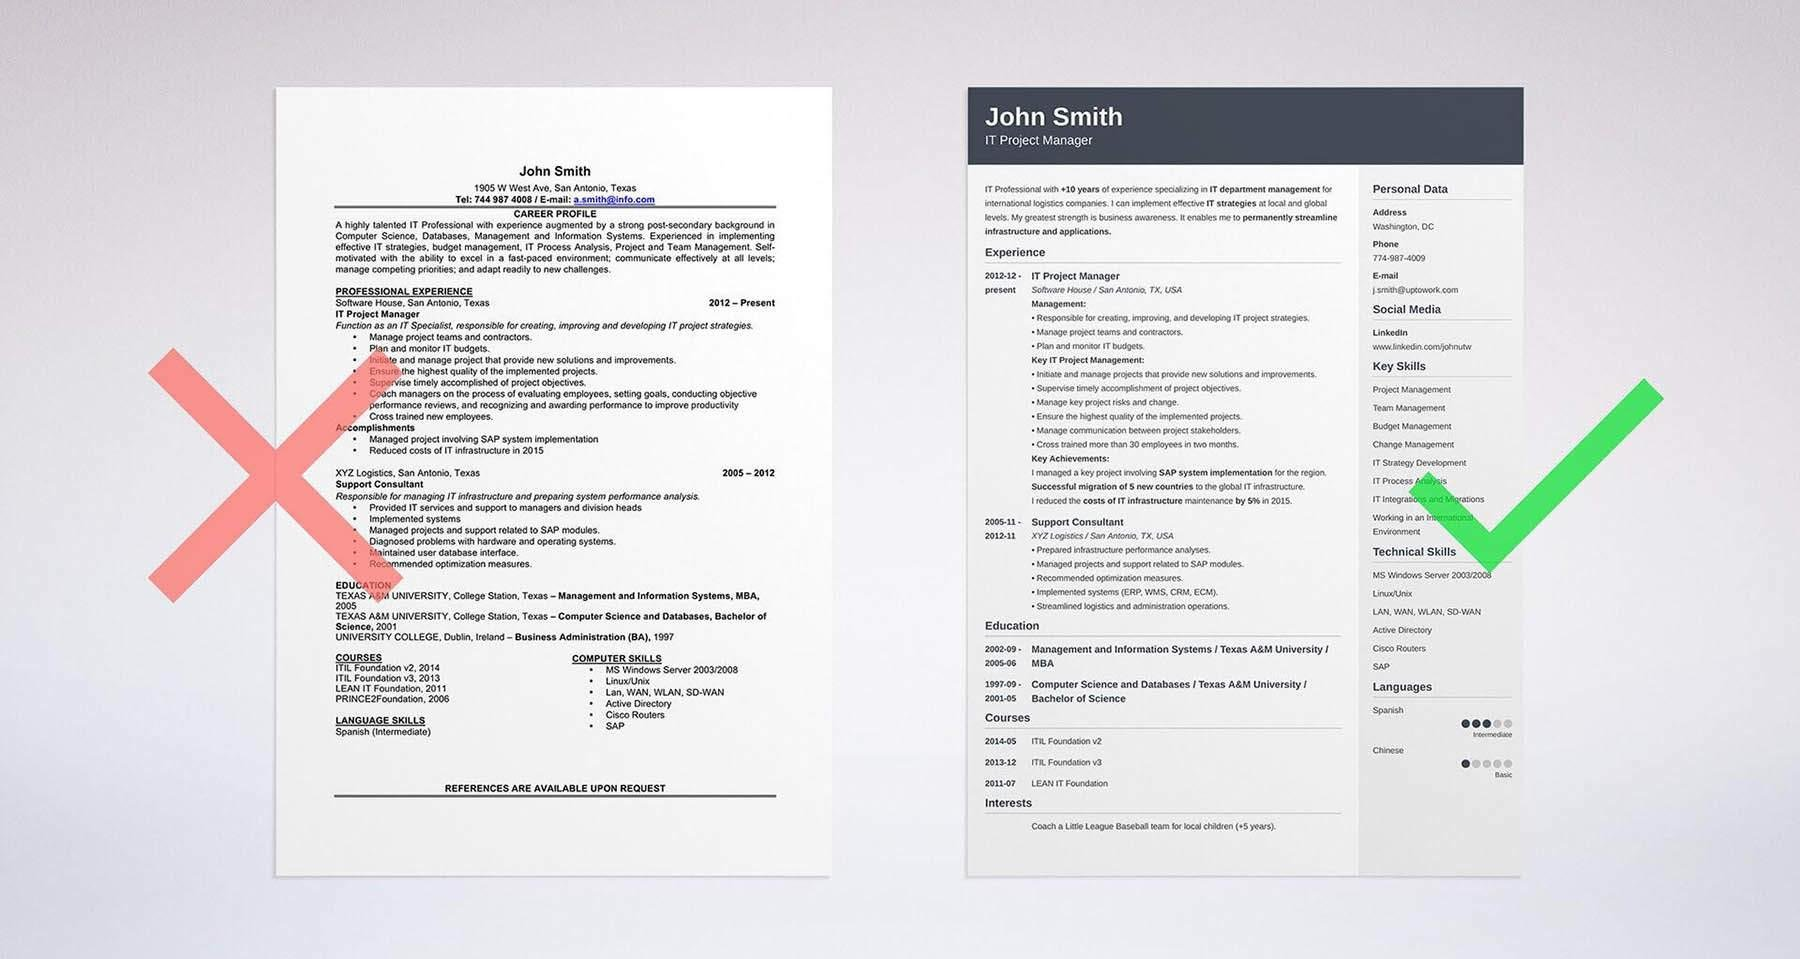 20+ Resume Objective Examples for Any Career [+General Proven Tips]